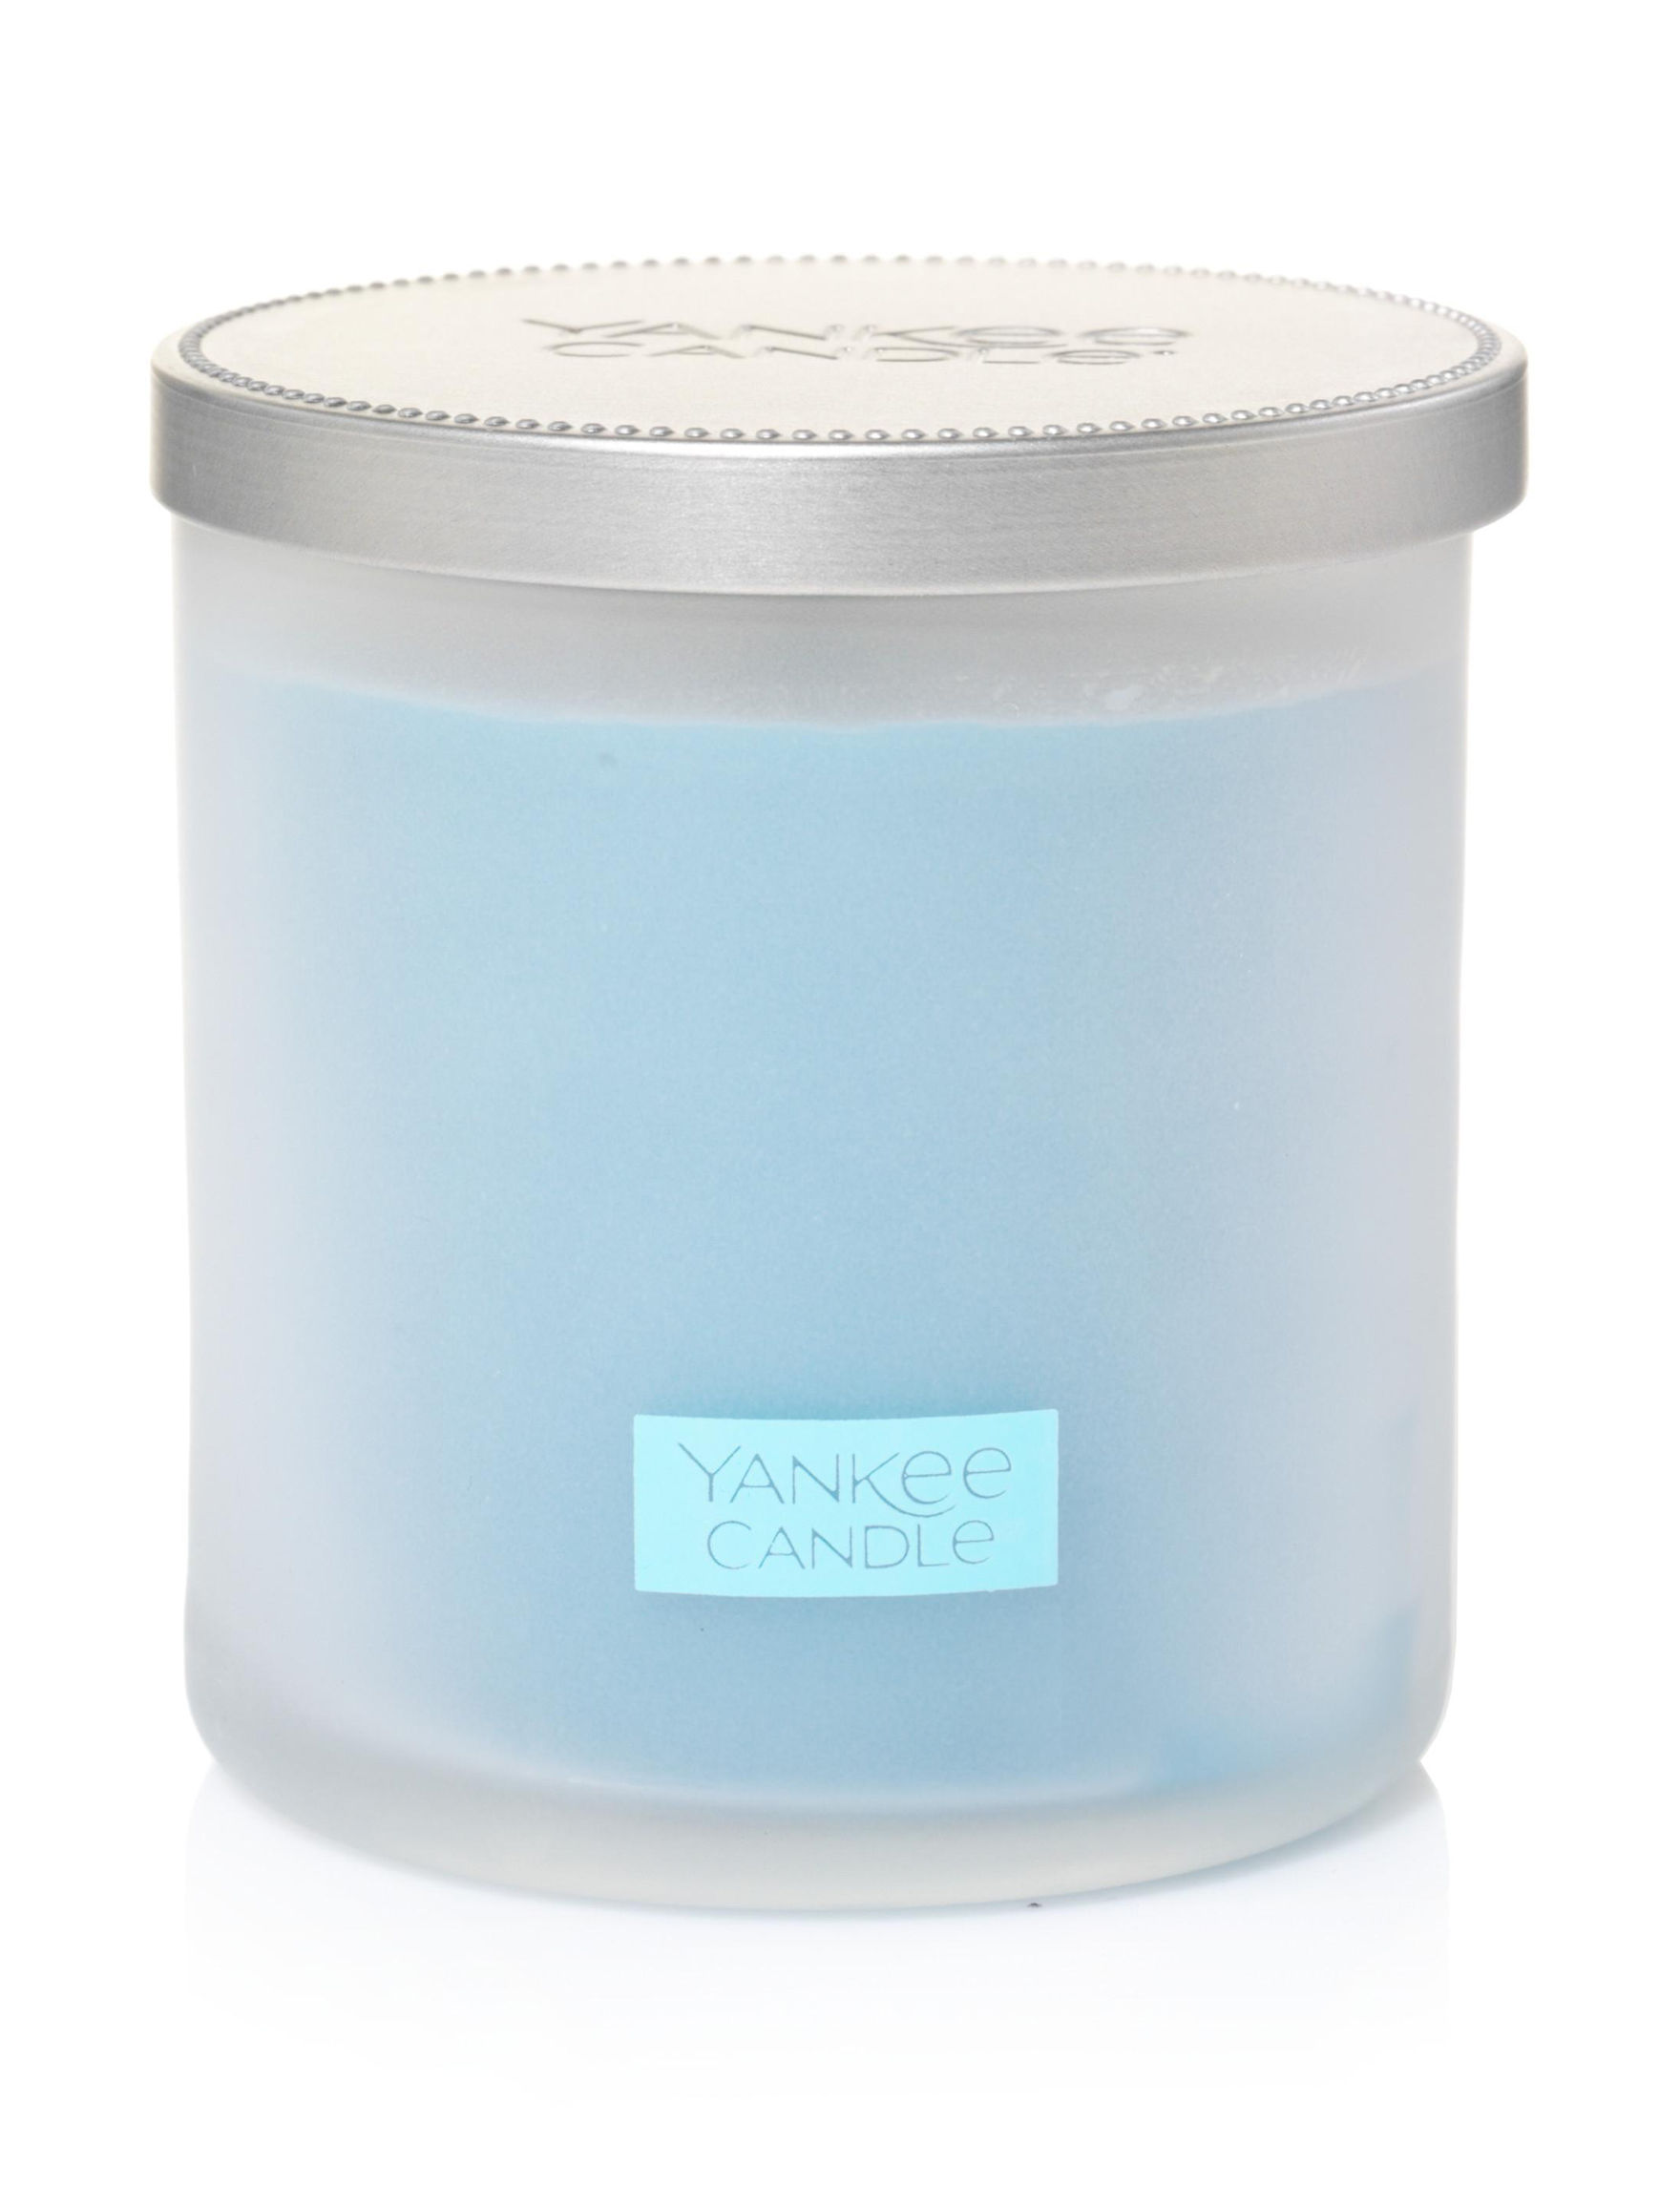 Yankee Candle  Candle Holders Candles Candles & Diffusers